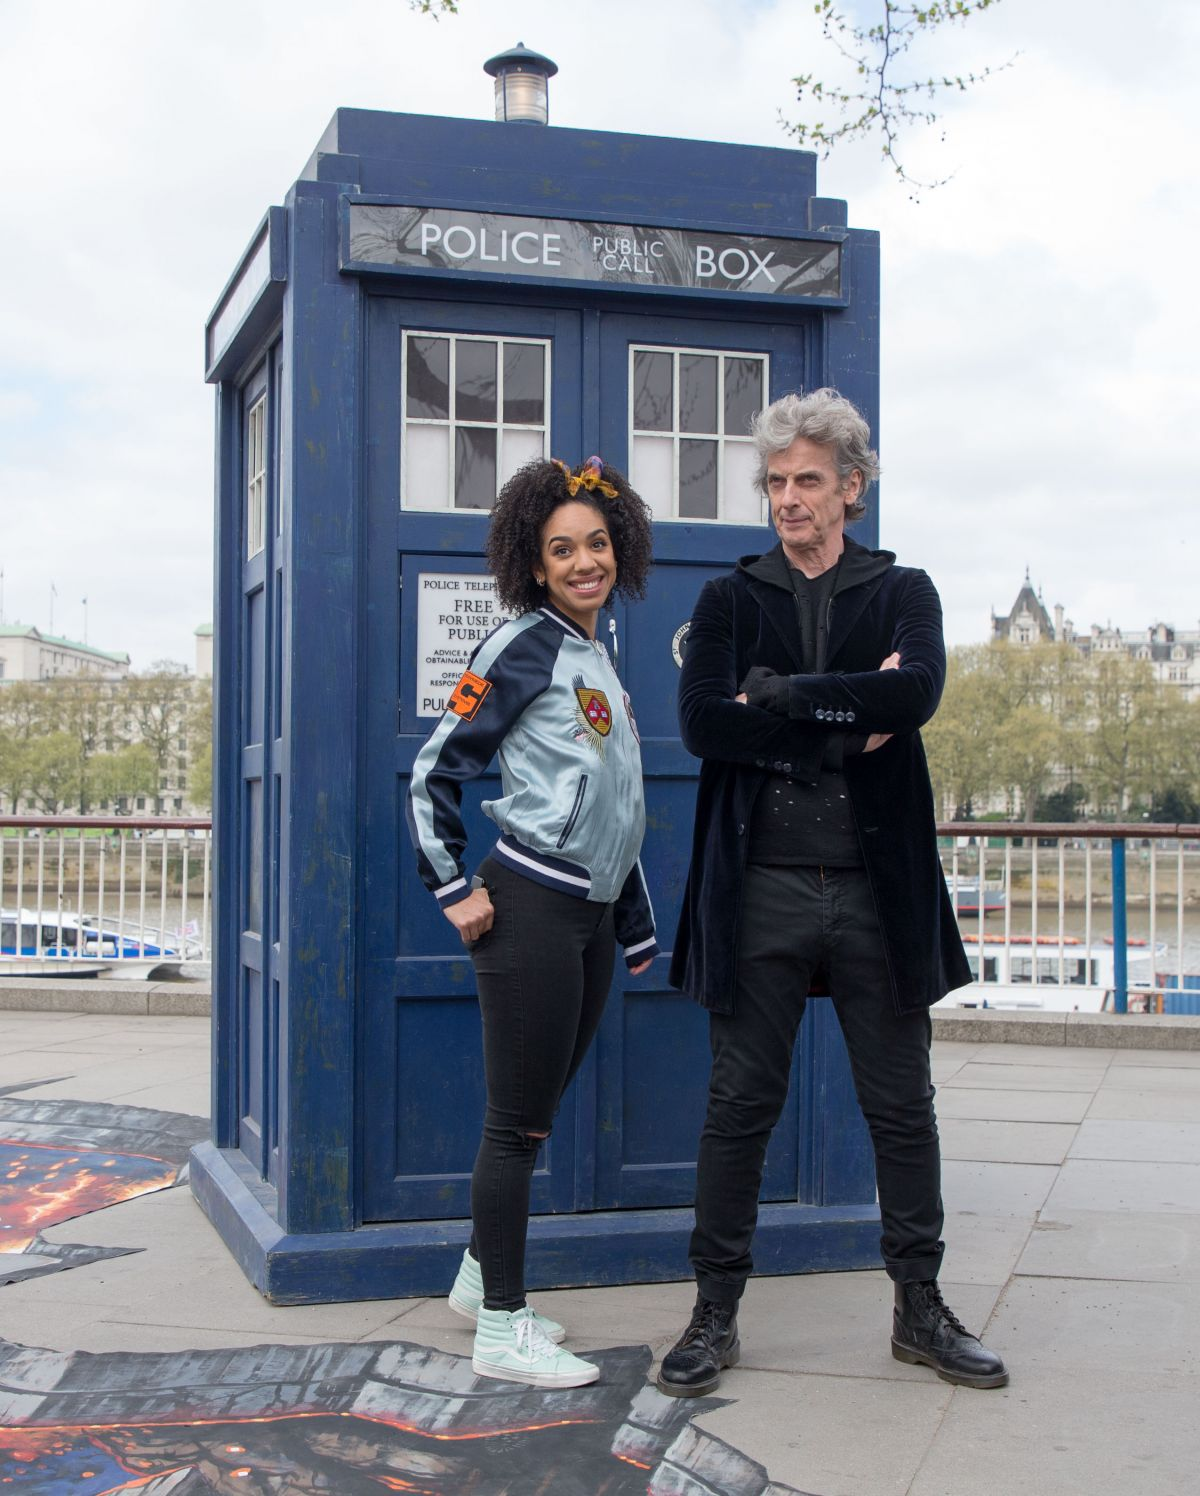 pearl-mackie-at-doctor-who-cast-promotions-at-southbank-04-12-2017_4.jpg